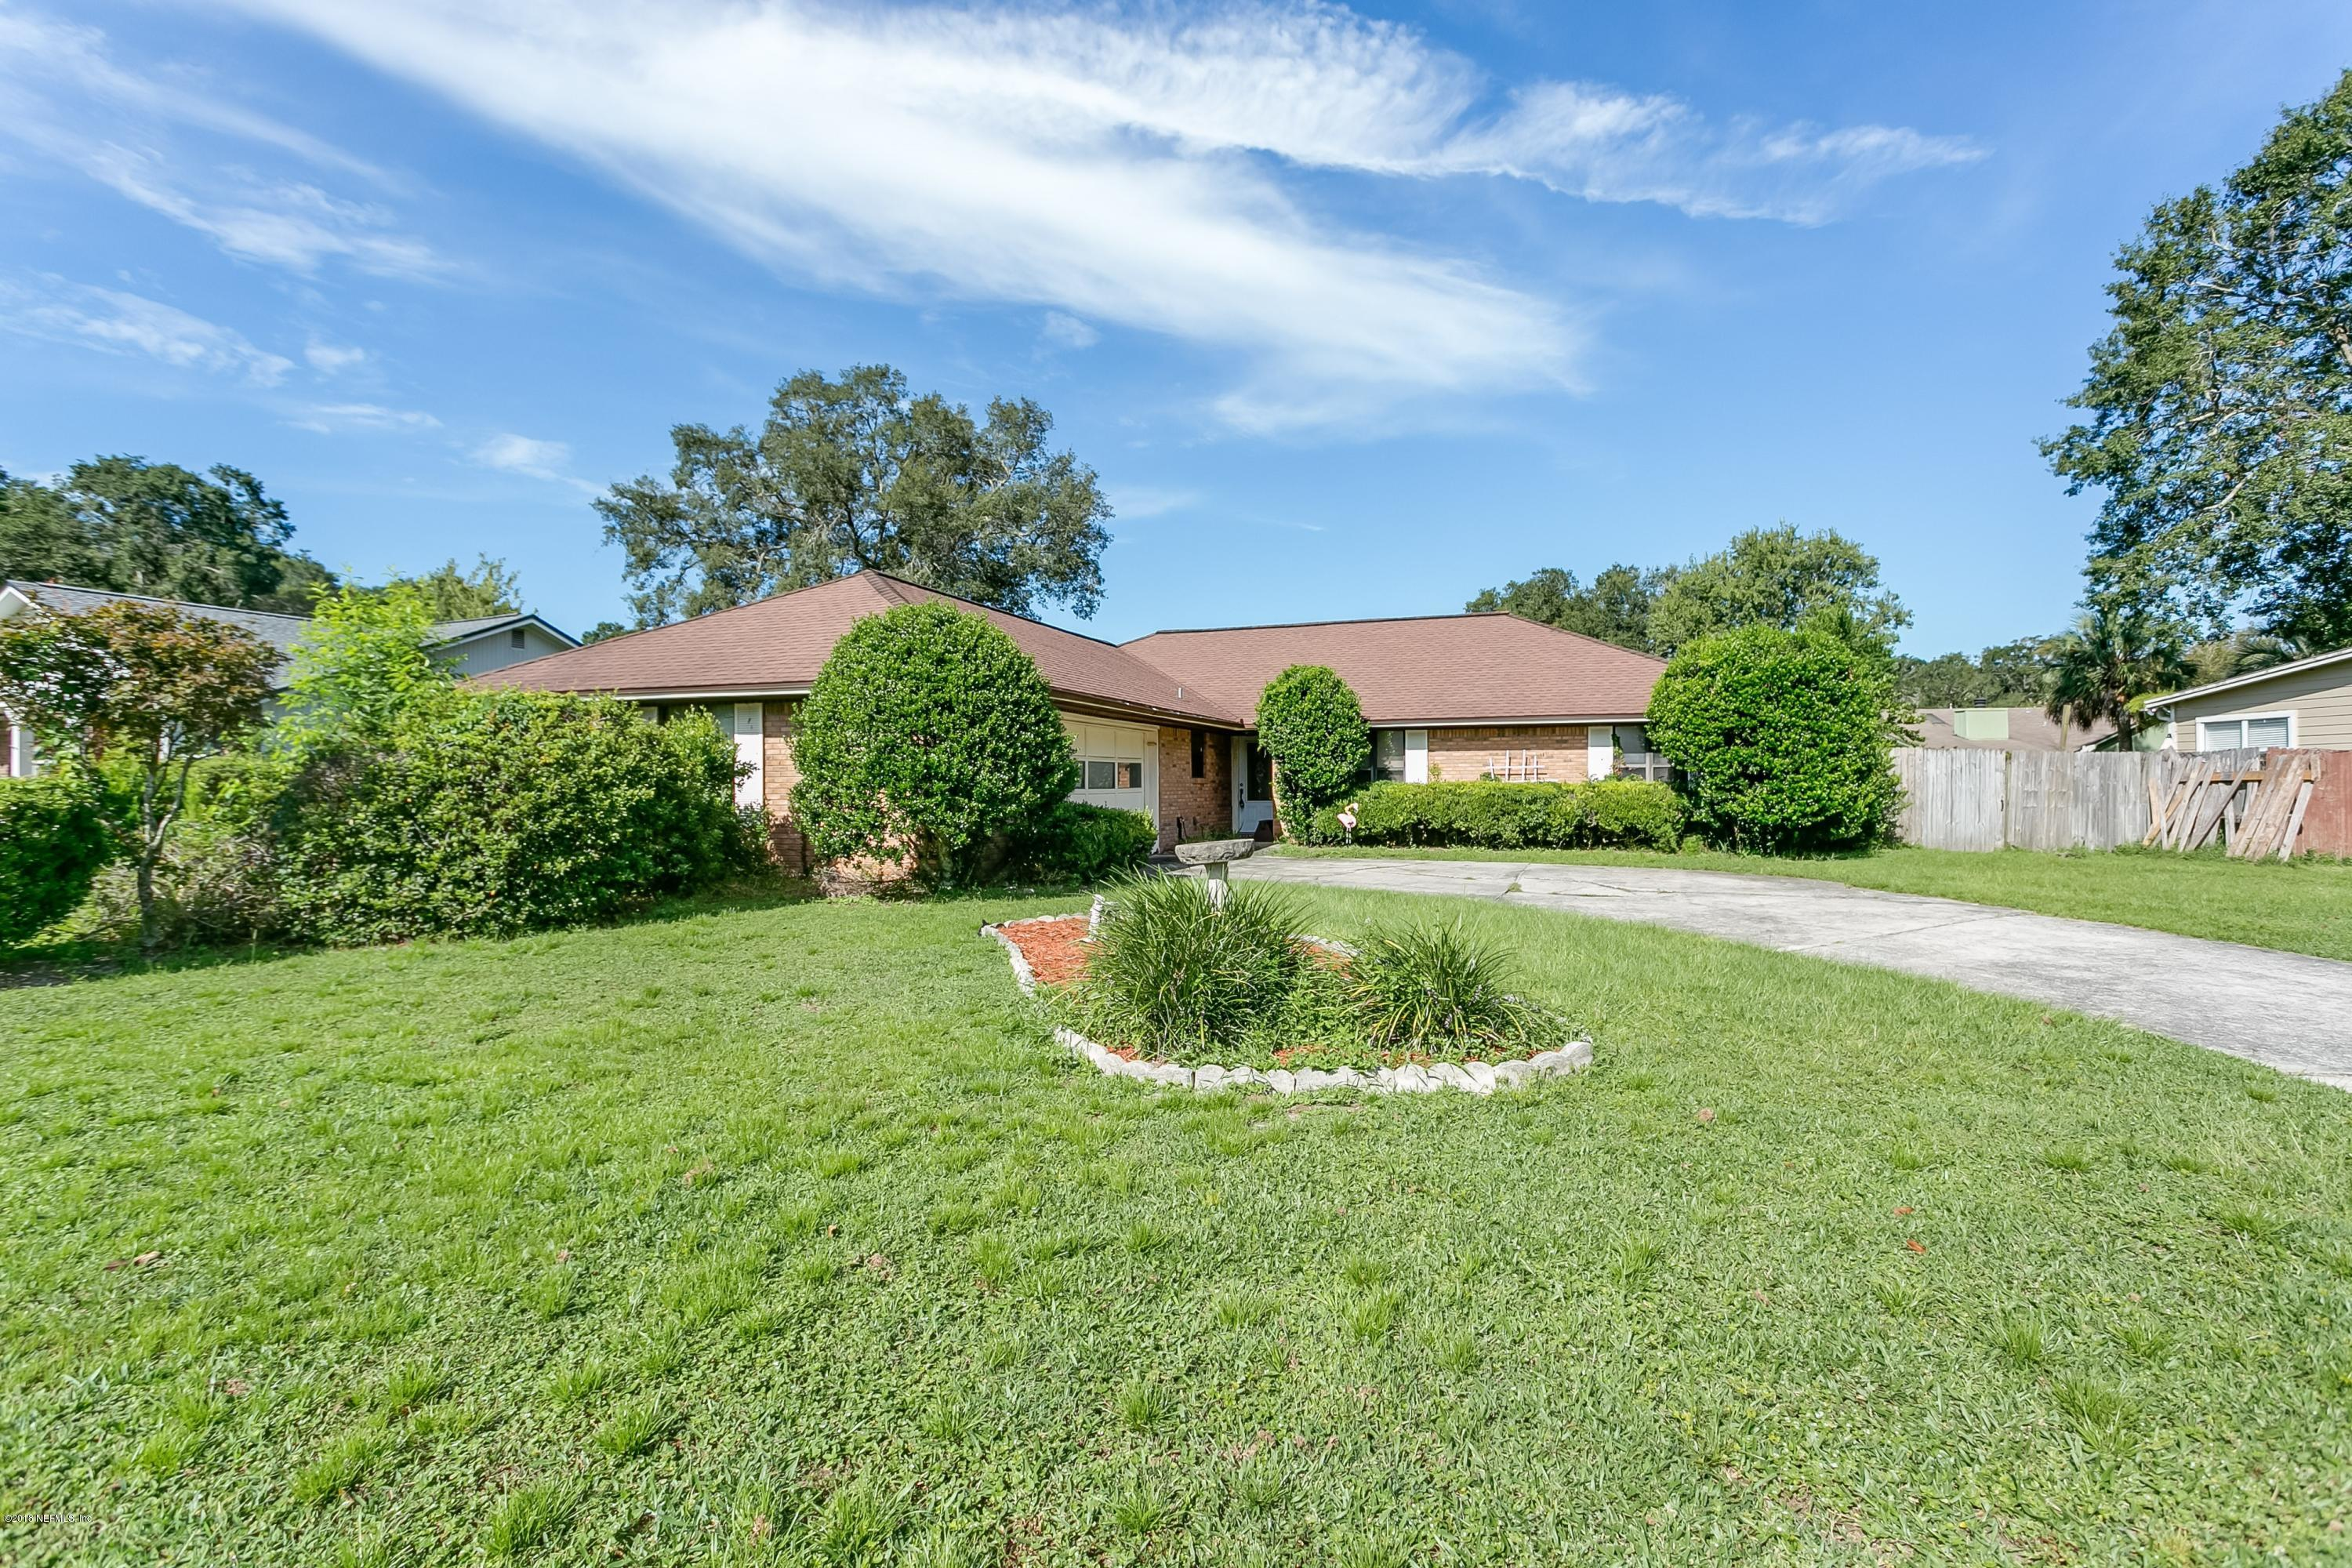 12664 FILLY, JACKSONVILLE, FLORIDA 32223, 3 Bedrooms Bedrooms, ,2 BathroomsBathrooms,Residential - single family,For sale,FILLY,947589